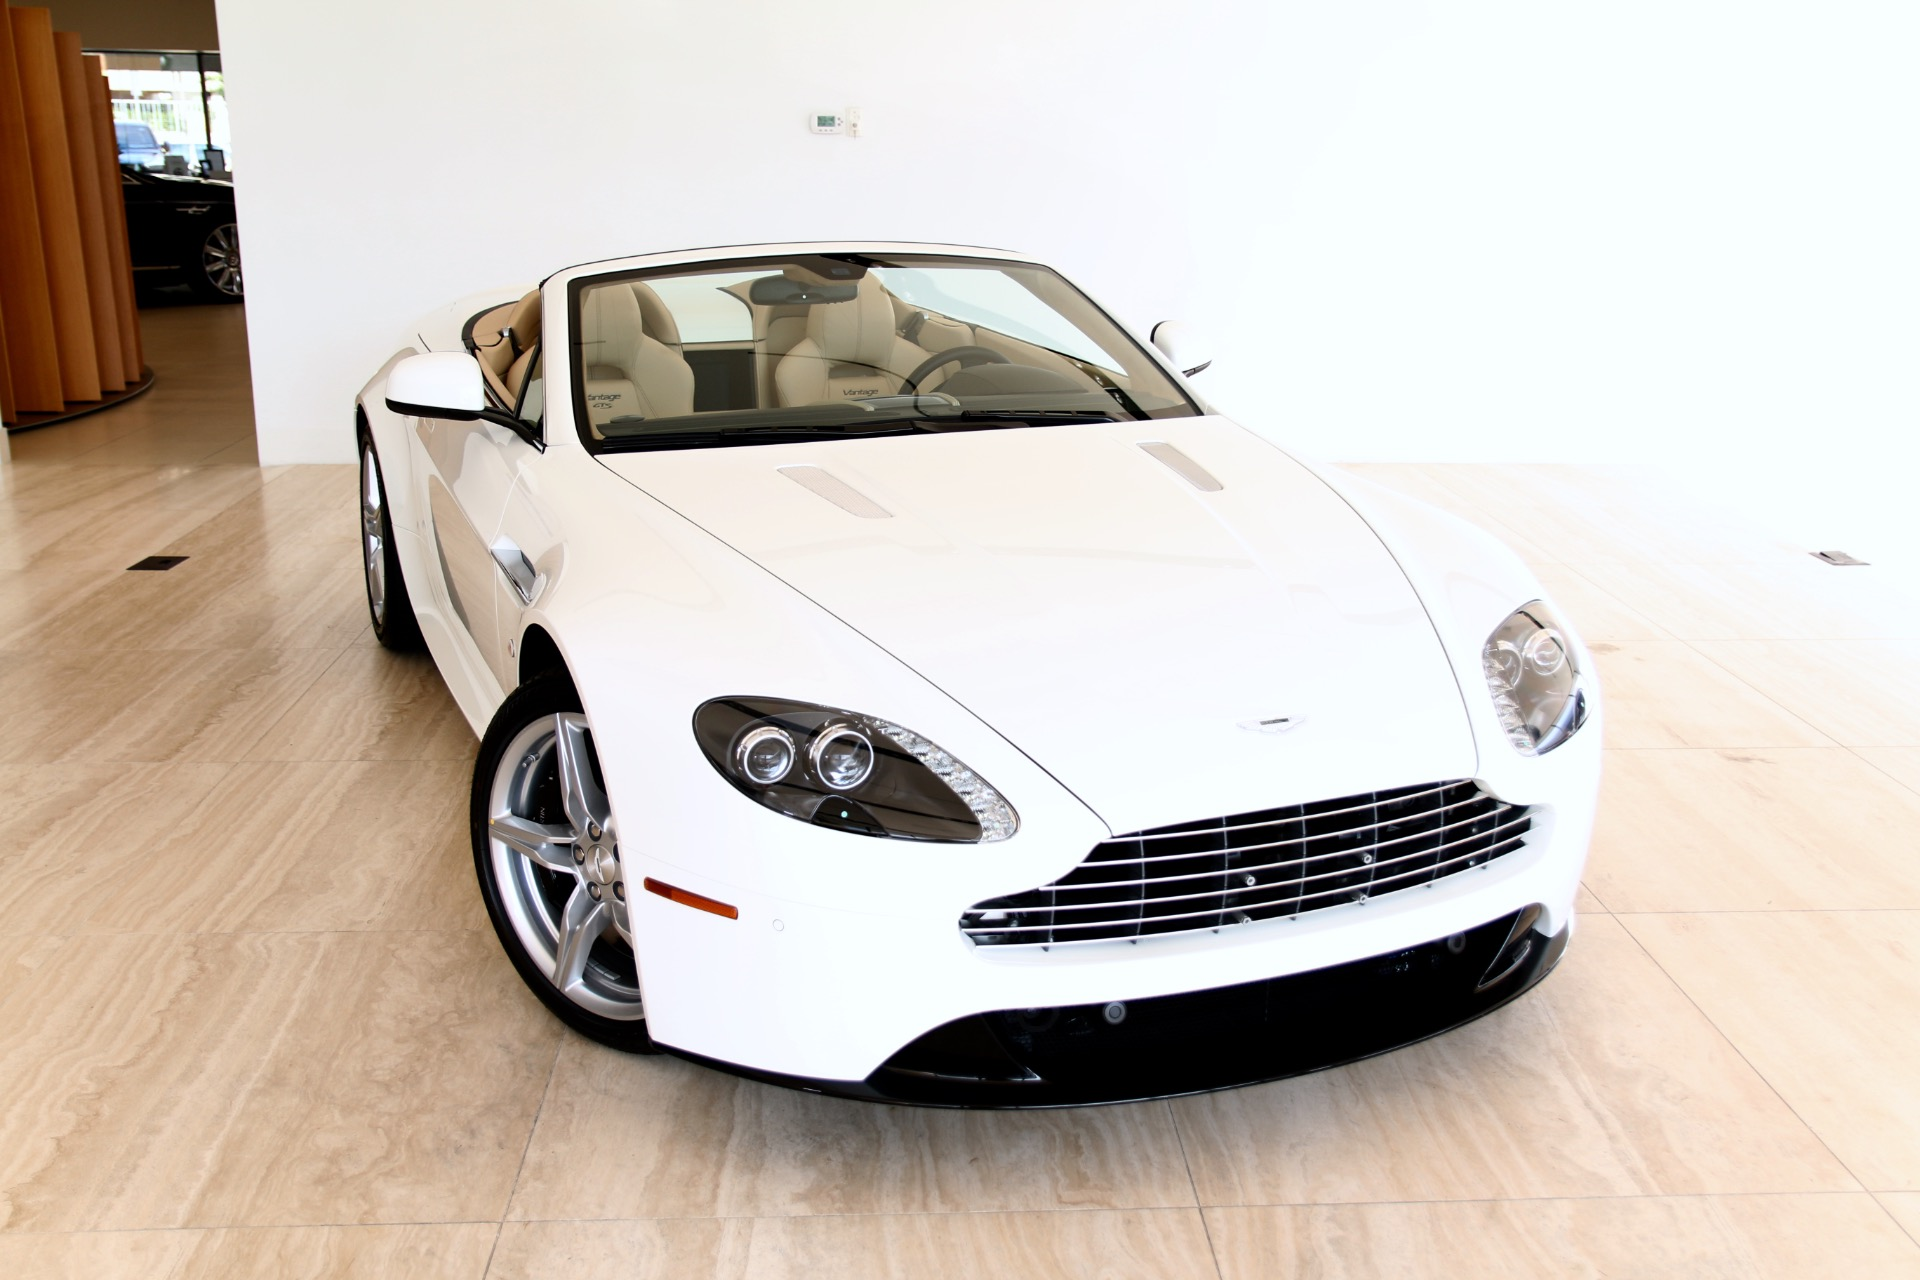 Aston Martin V Vantage GTS Roadster Stock ND For Sale - Aston martin used for sale